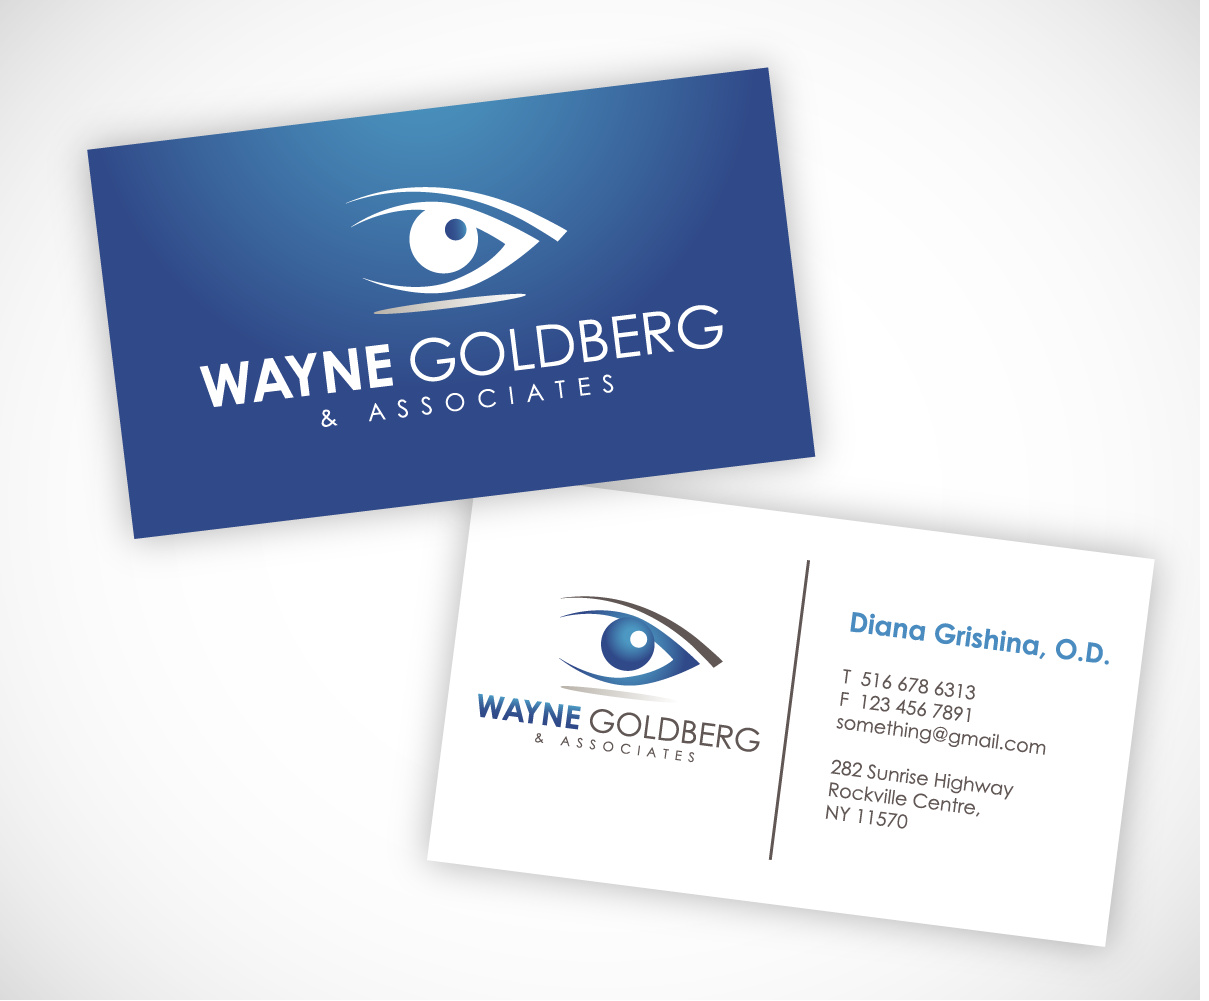 Professional upmarket logo and business card design for mira logo and business card design by wolf for wayne goldberg associates design 2780785 m4hsunfo